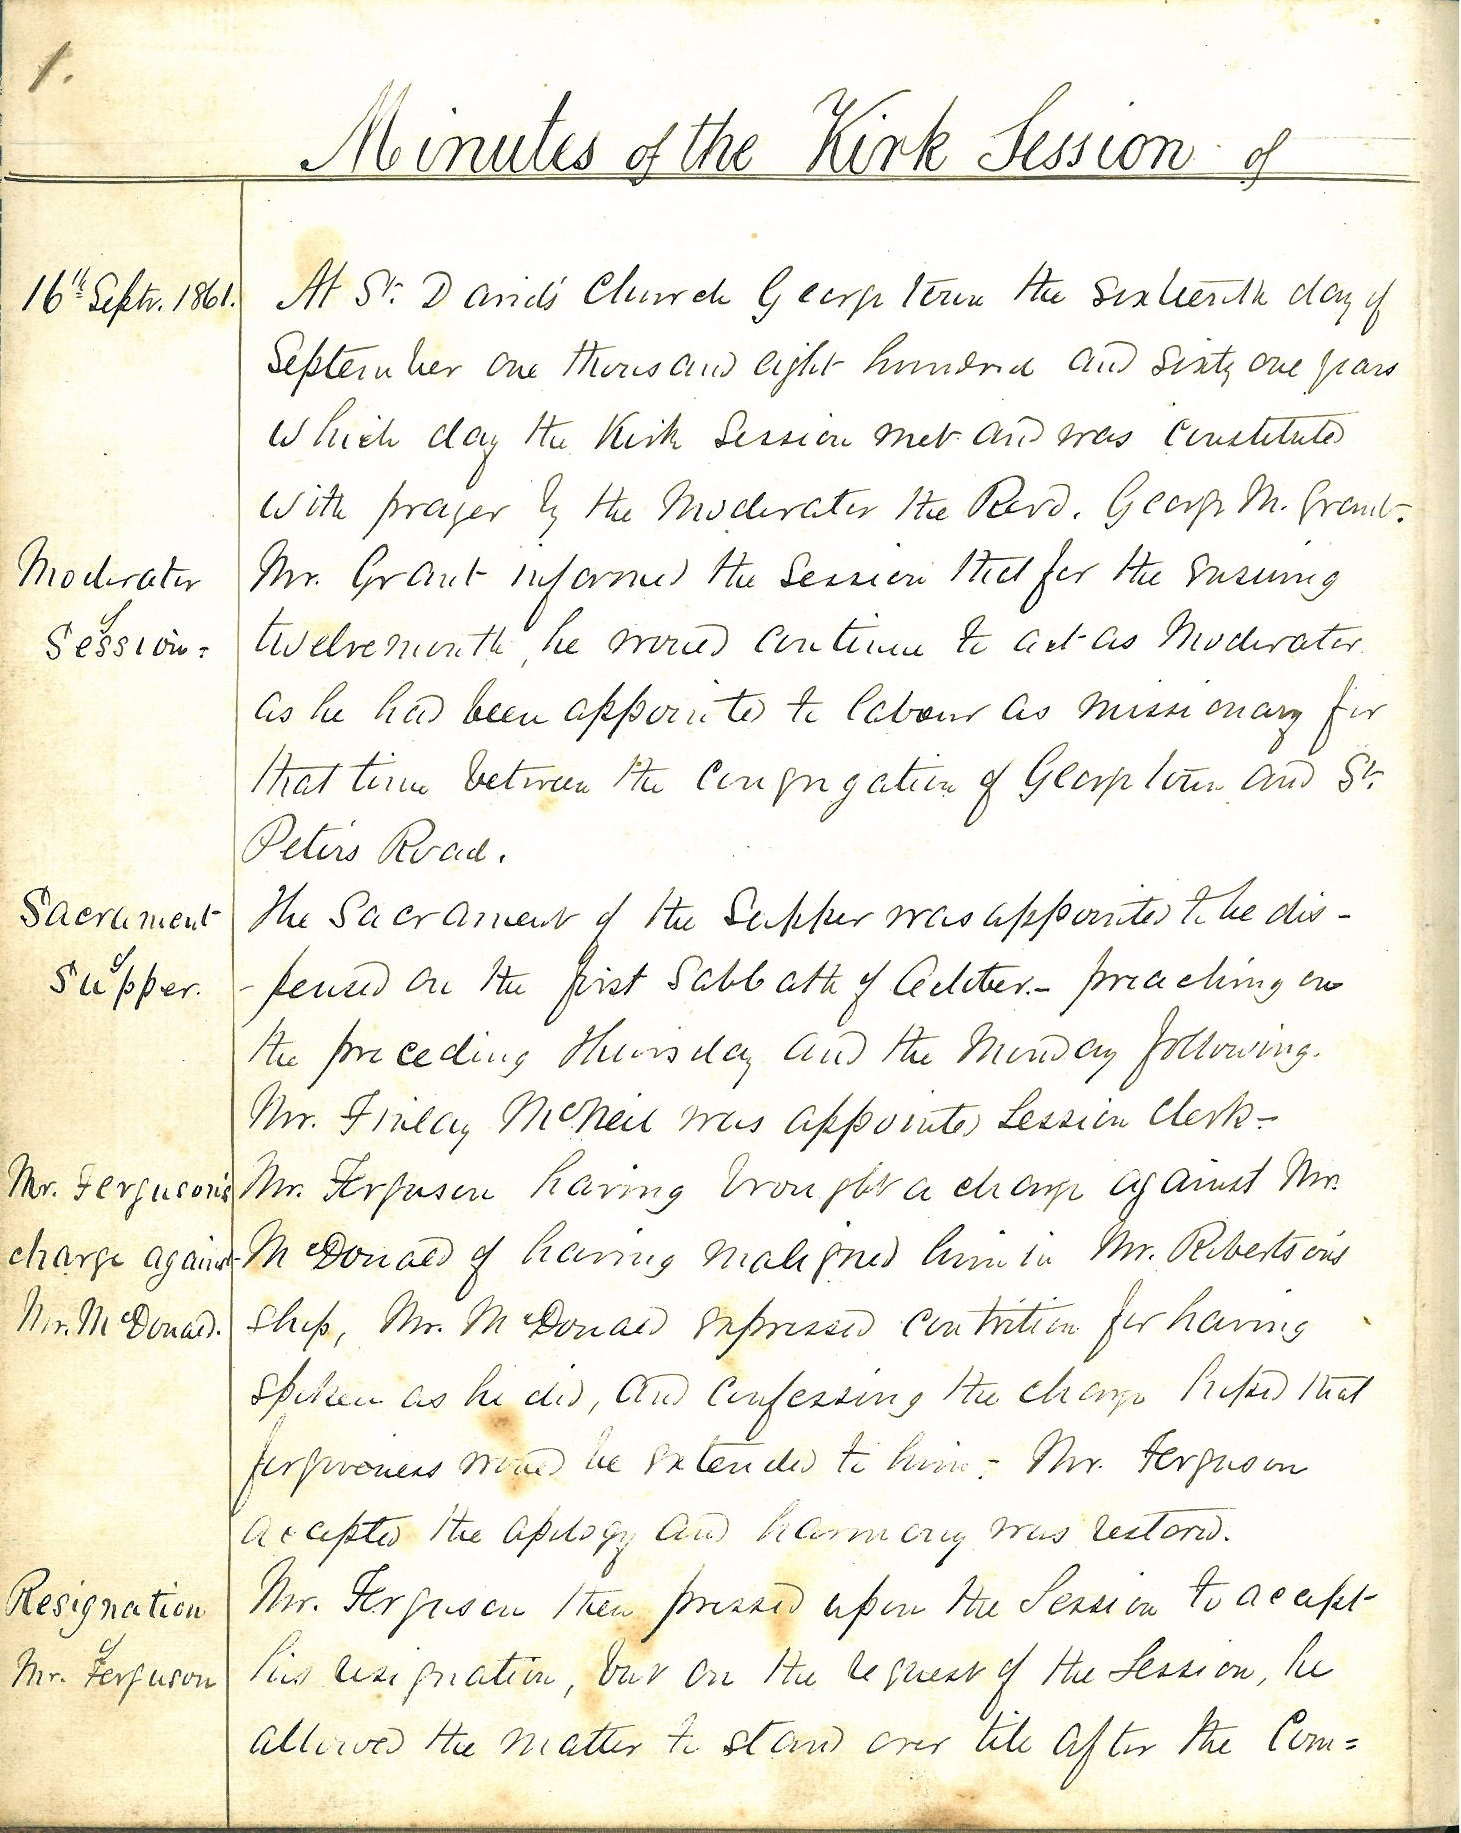 St. David's, Georgetown Pastoral Charge Records Listing